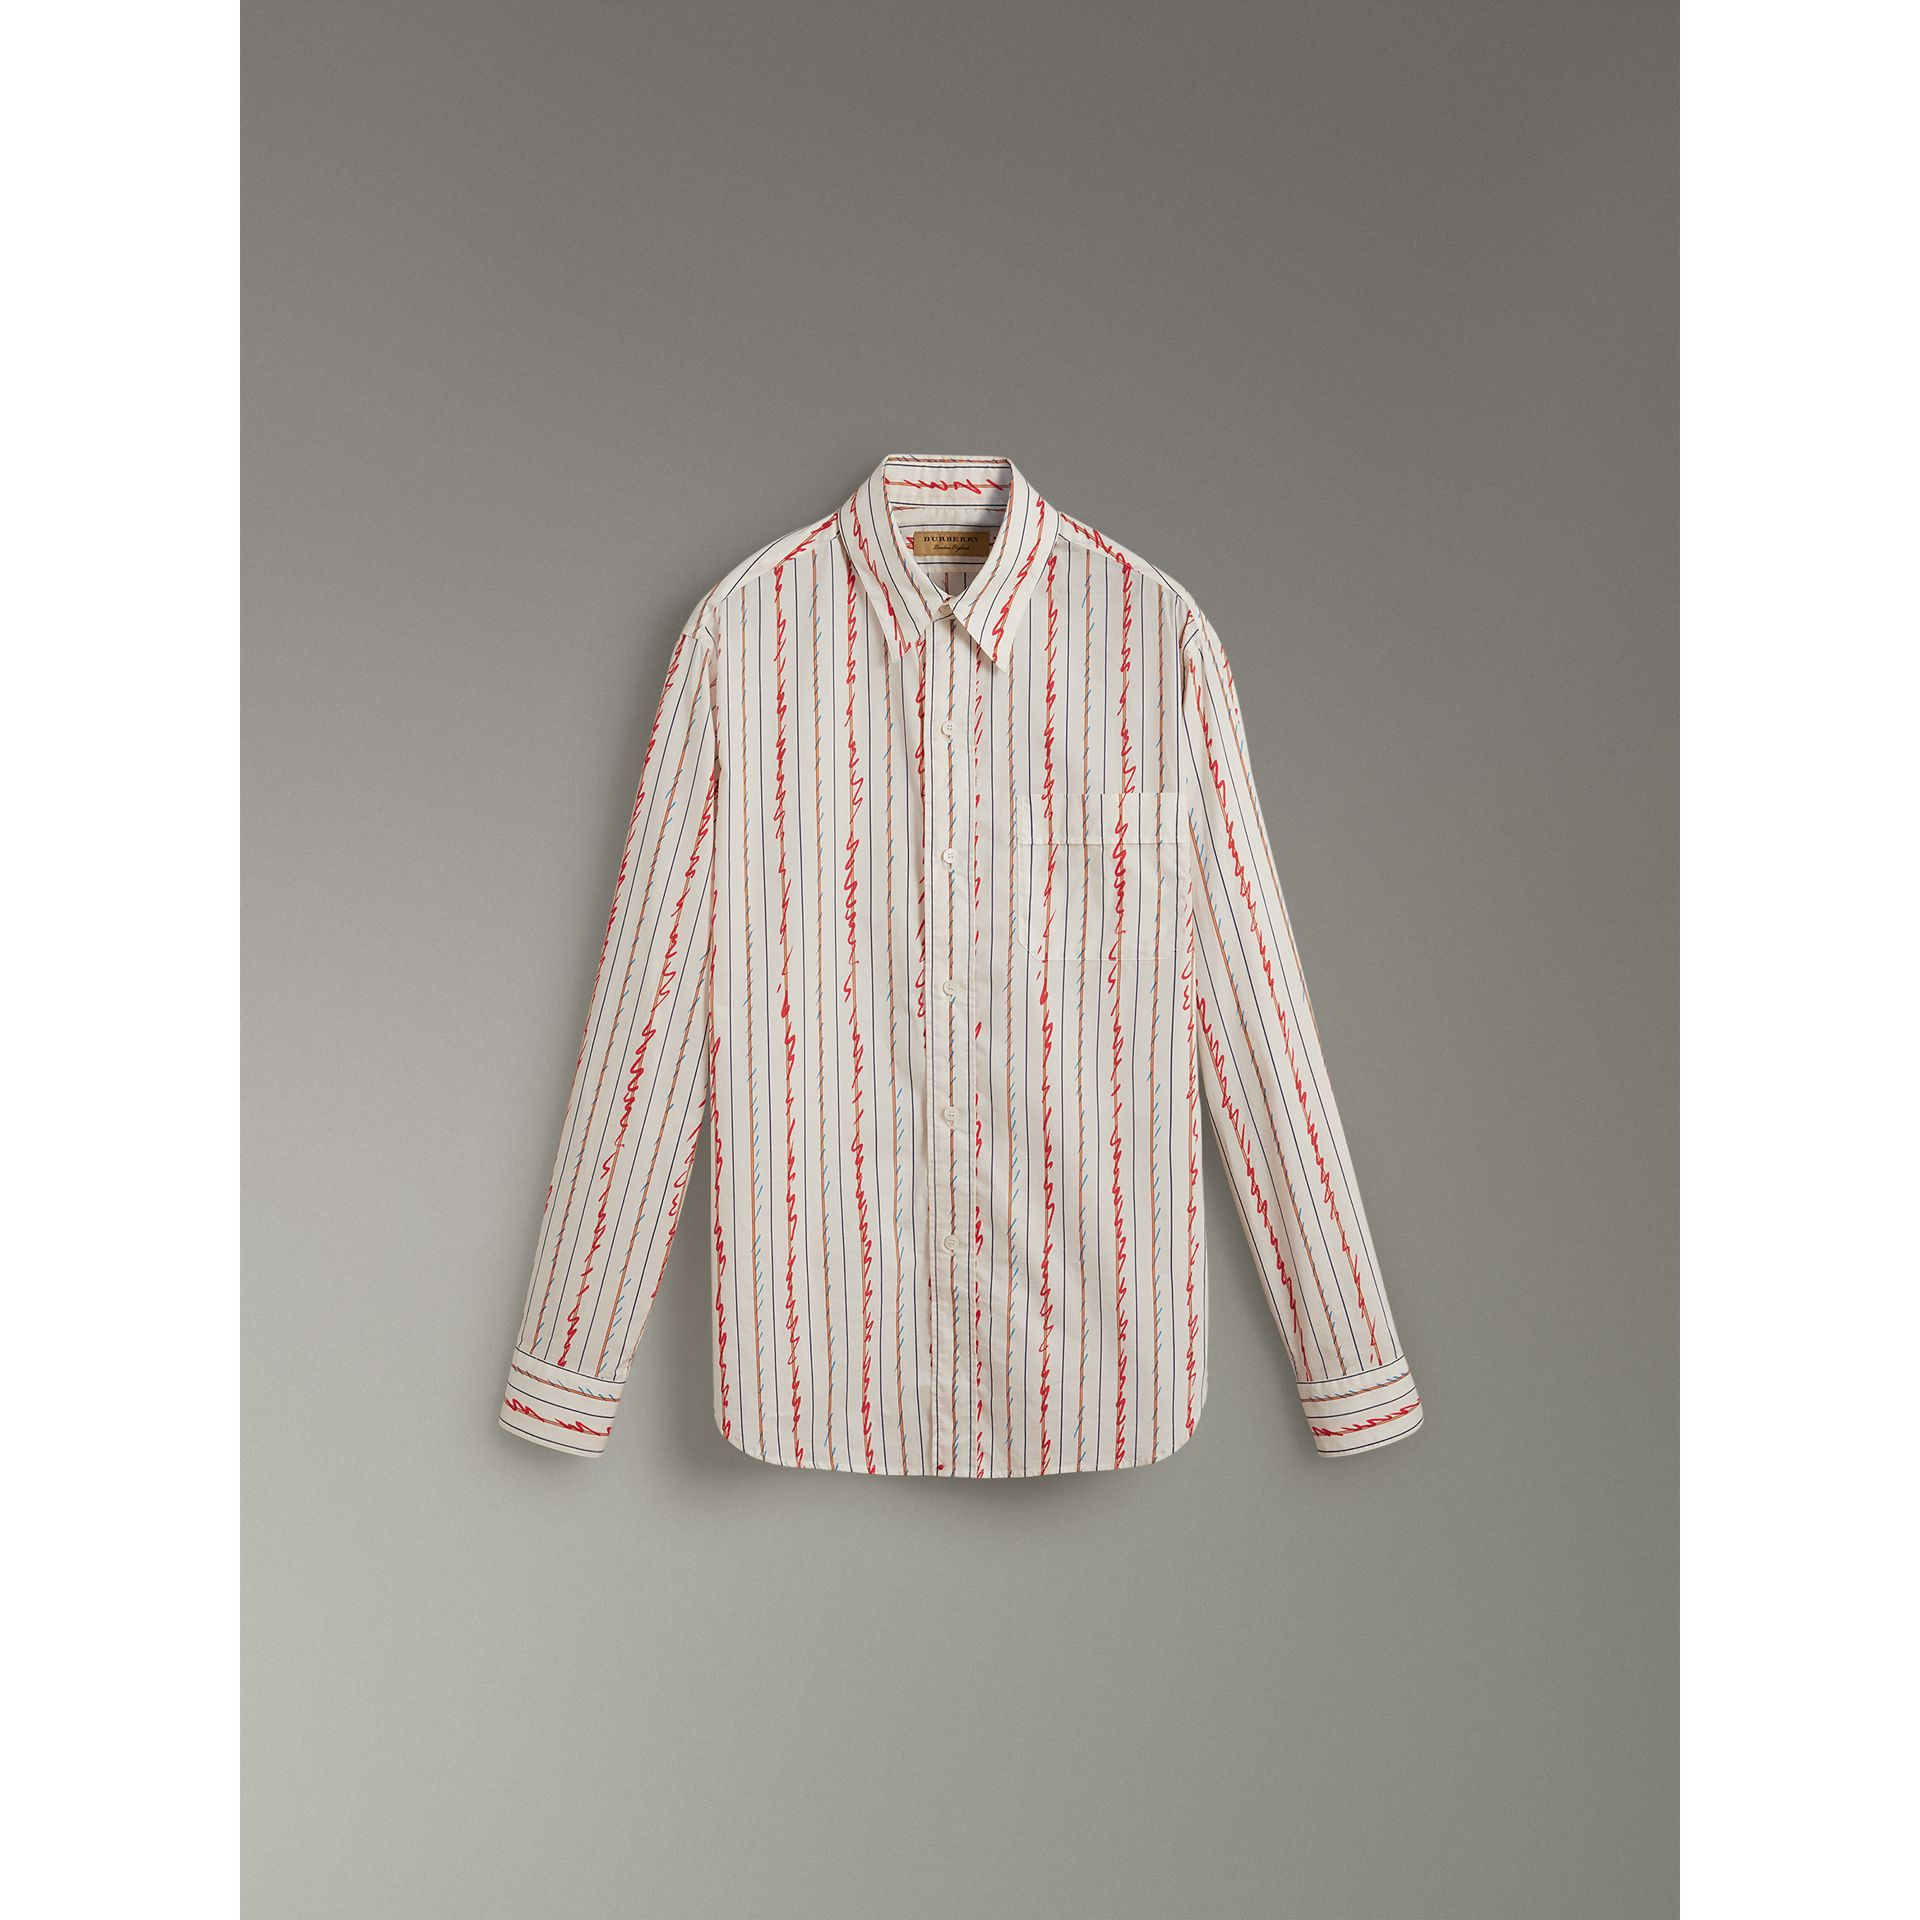 Scribble Stripe Cotton Shirt in Red - Men | Burberry Hong Kong - gallery image 3